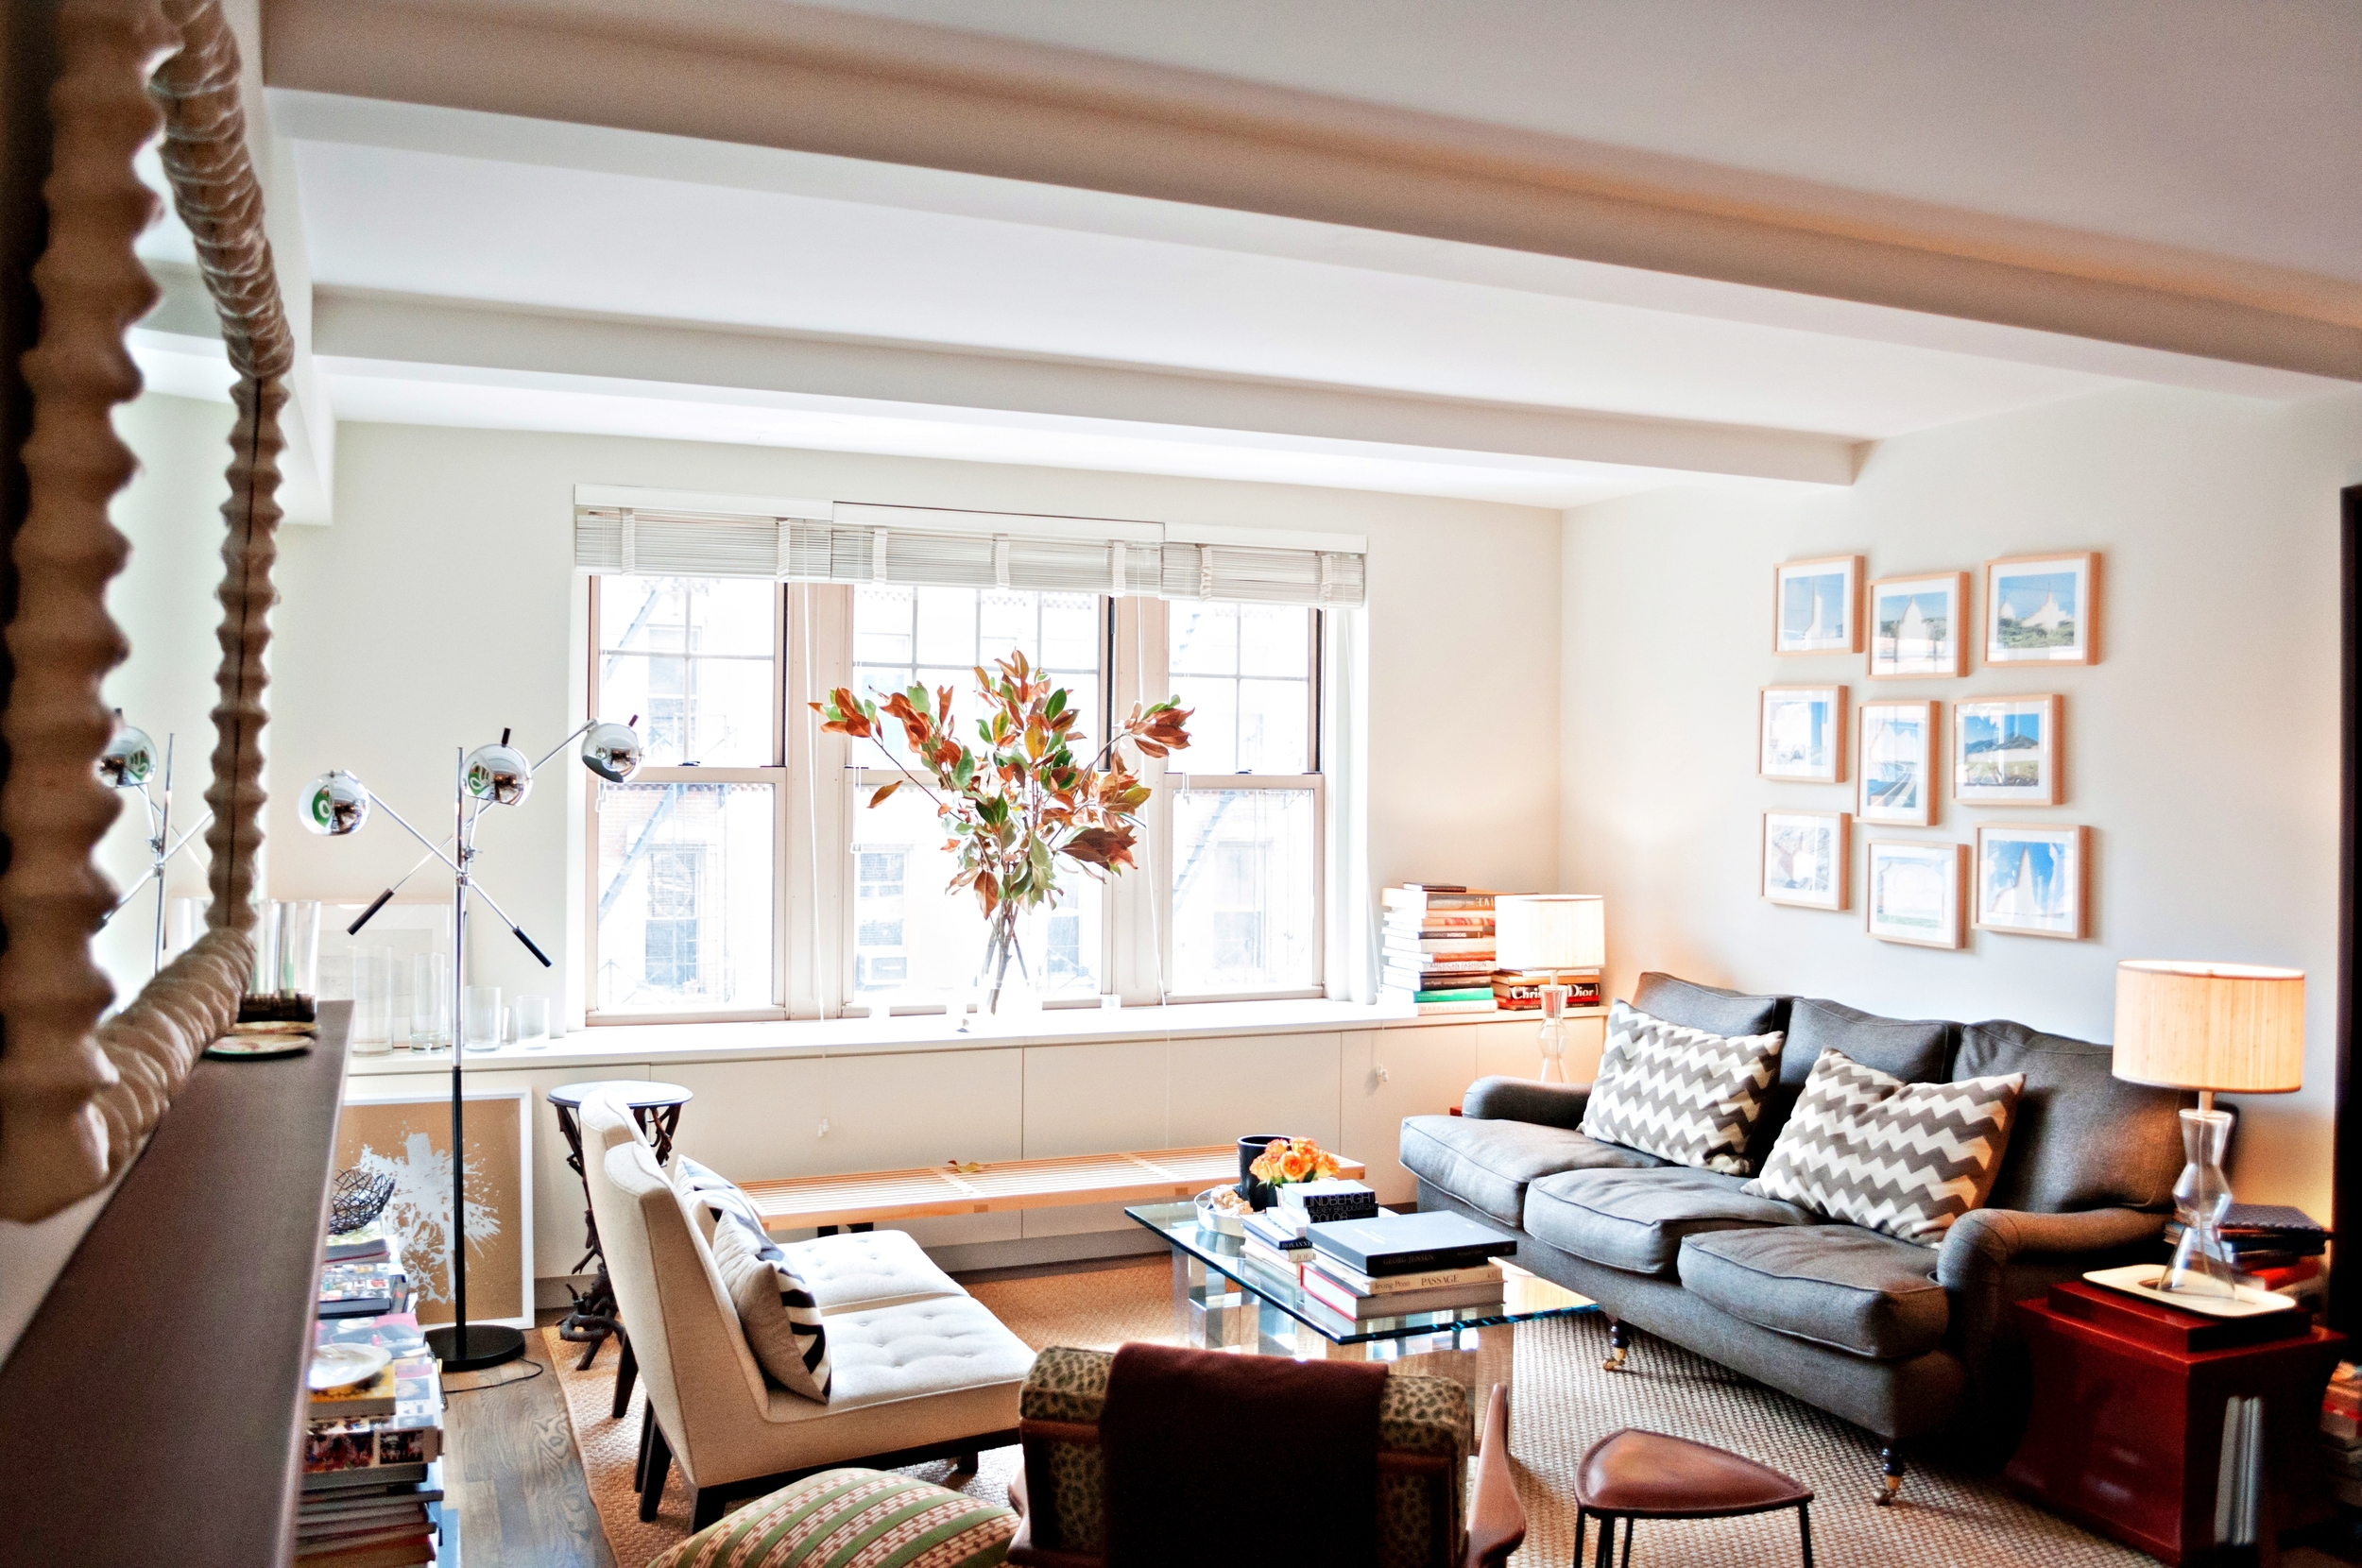 """Peter's living room is sunny and bright. The Jose Davila arrangement of""""Buildings You Have to See Before You Die"""" on top of the sofa is a subtleeye-catcher. I remember seeing this particular series for the first time at Art Basel Miami Beach in 2008."""